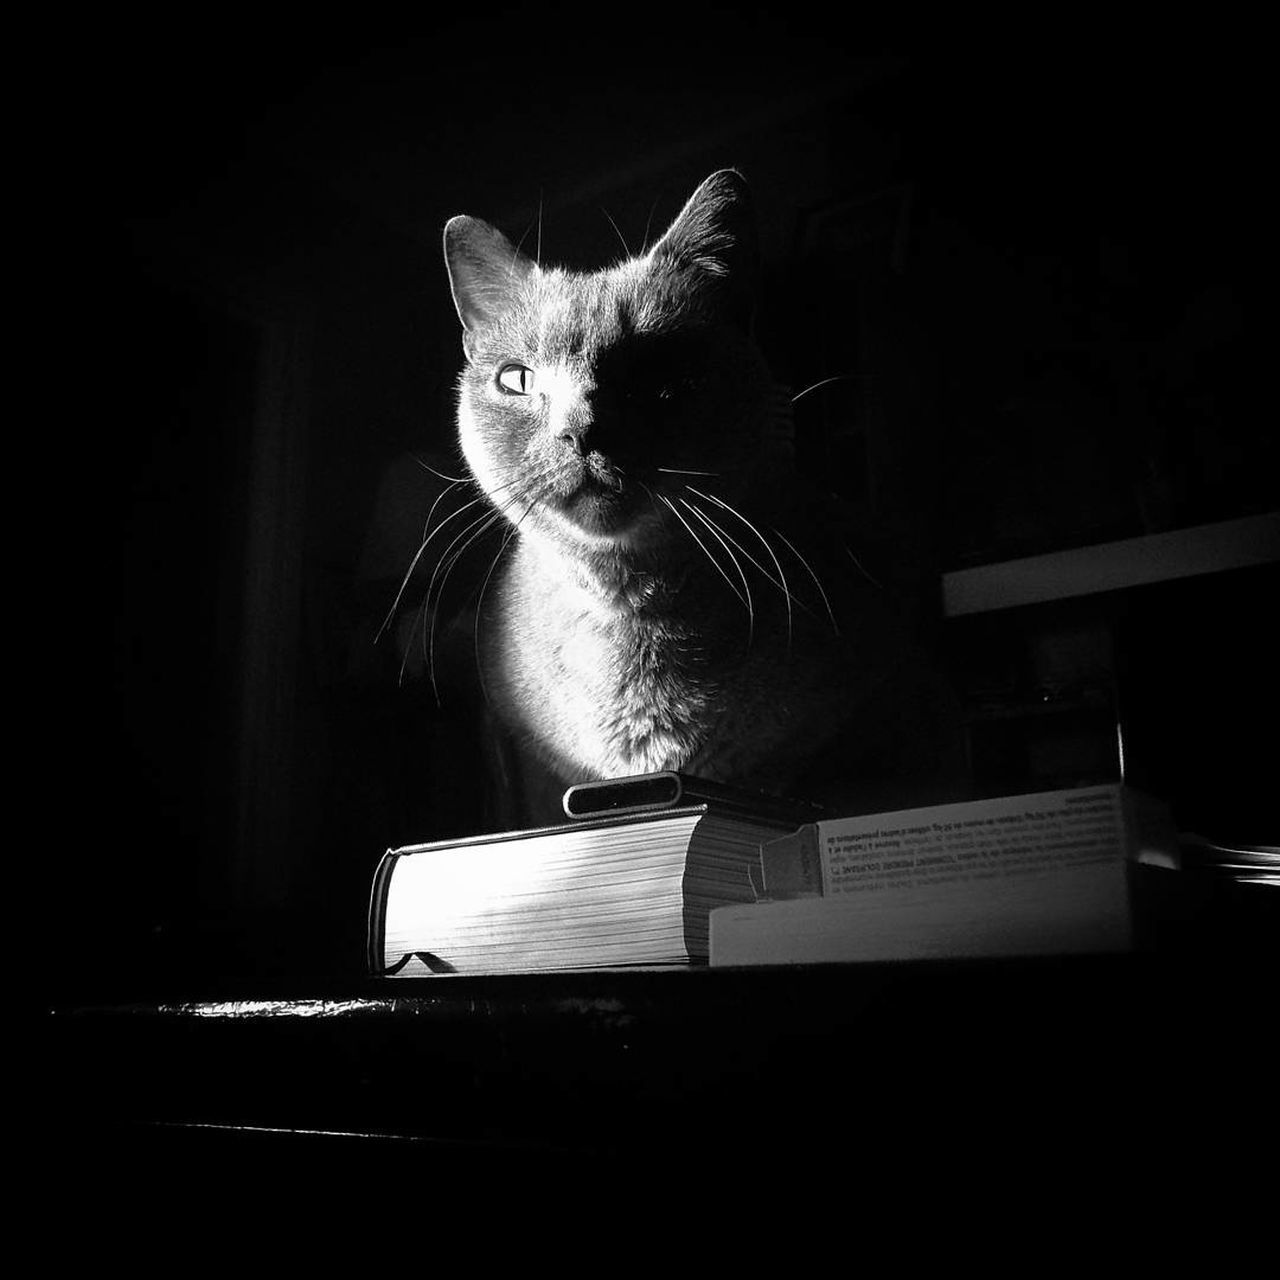 Morning light.. 🐱 Cat Cats Of EyeEm Light And Shadow Blackandwhite Animal Photography Animal Head  Animal Themes